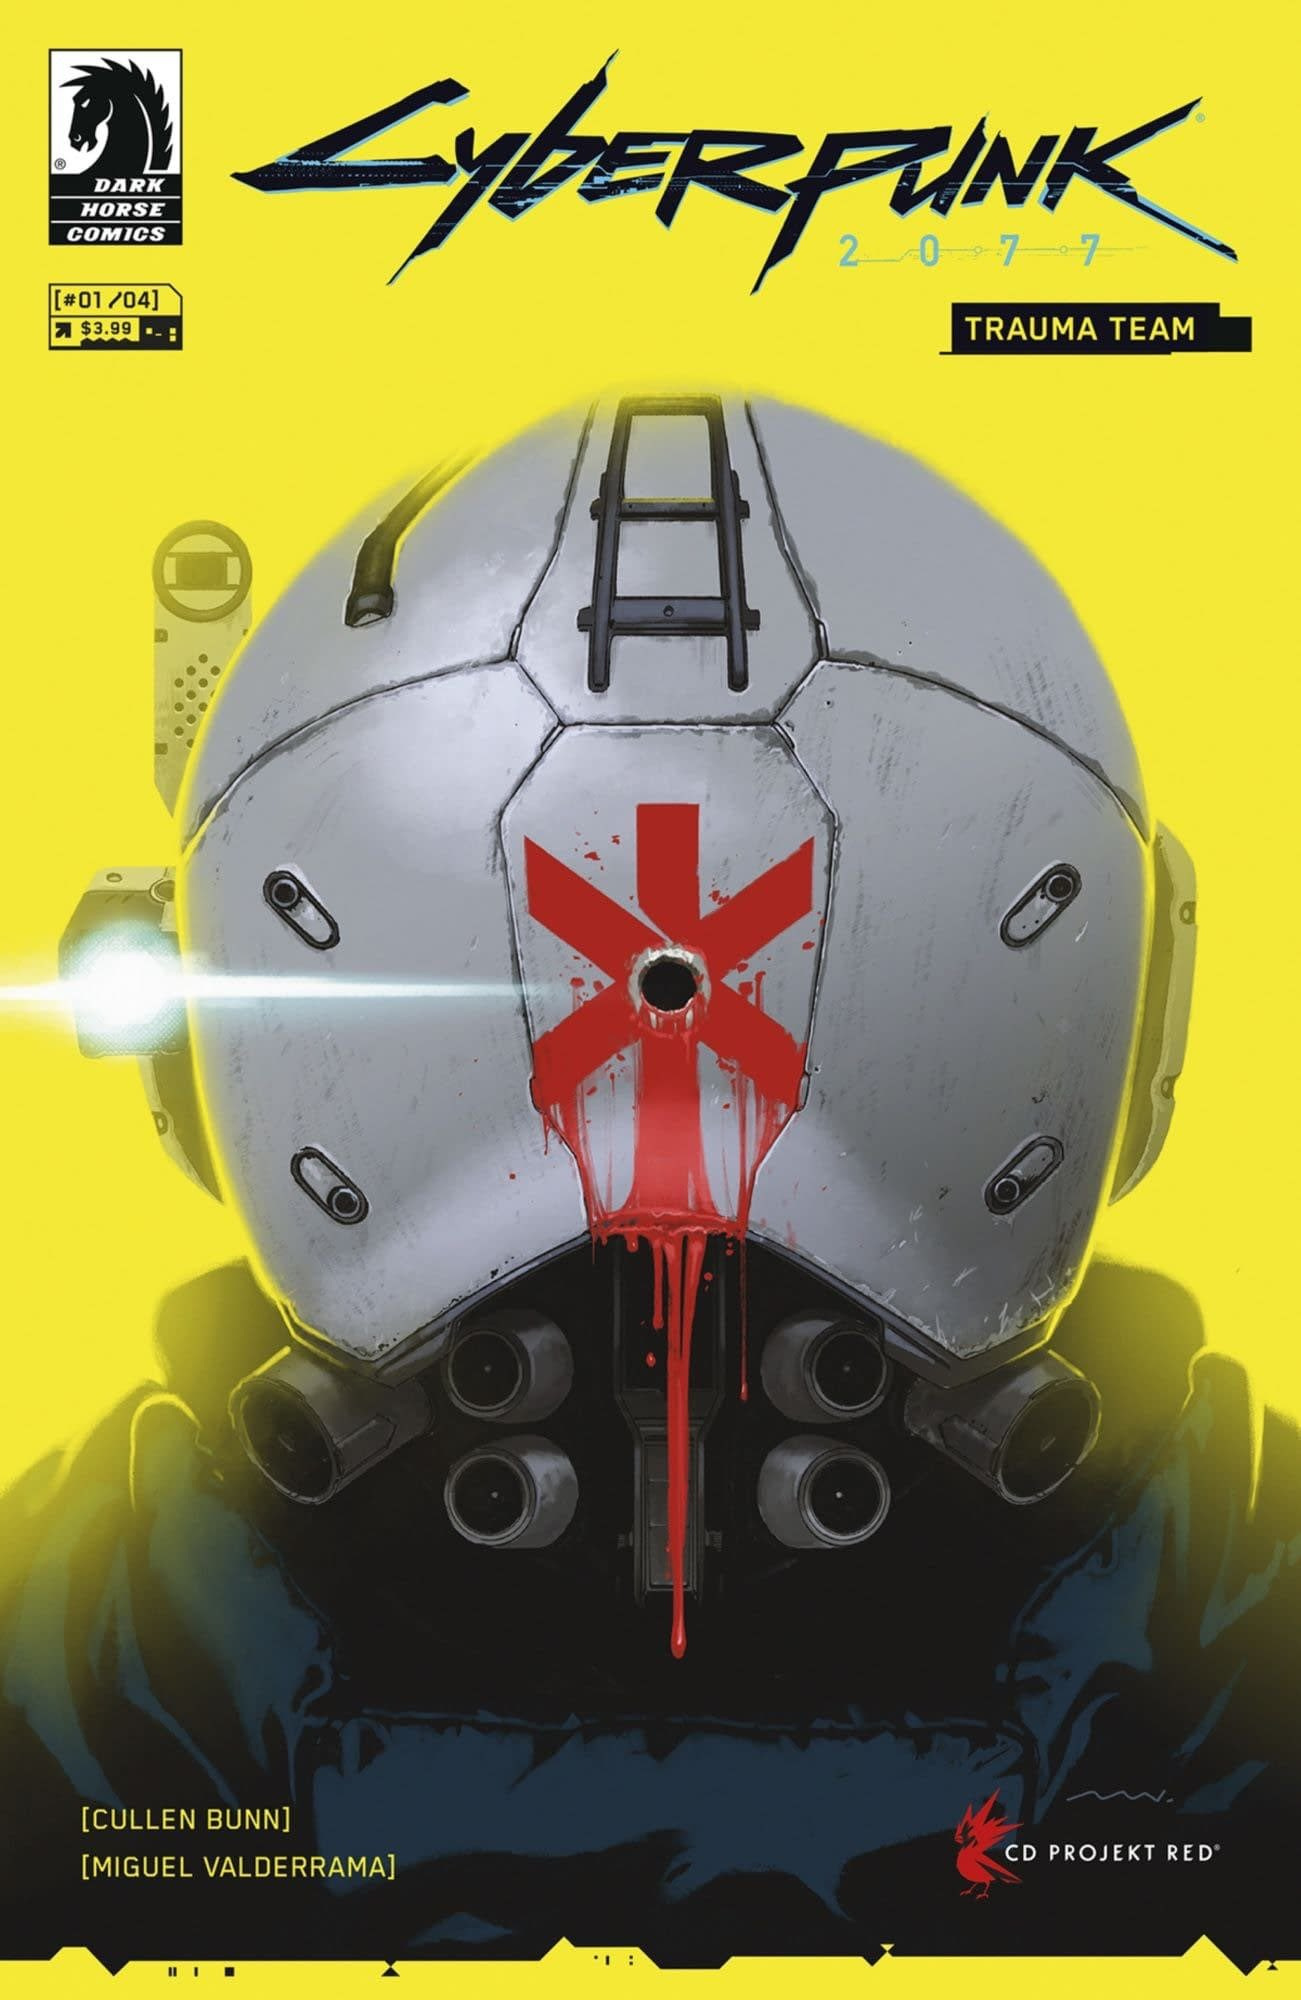 There's also a Cyberpunk 2077 comic book coming